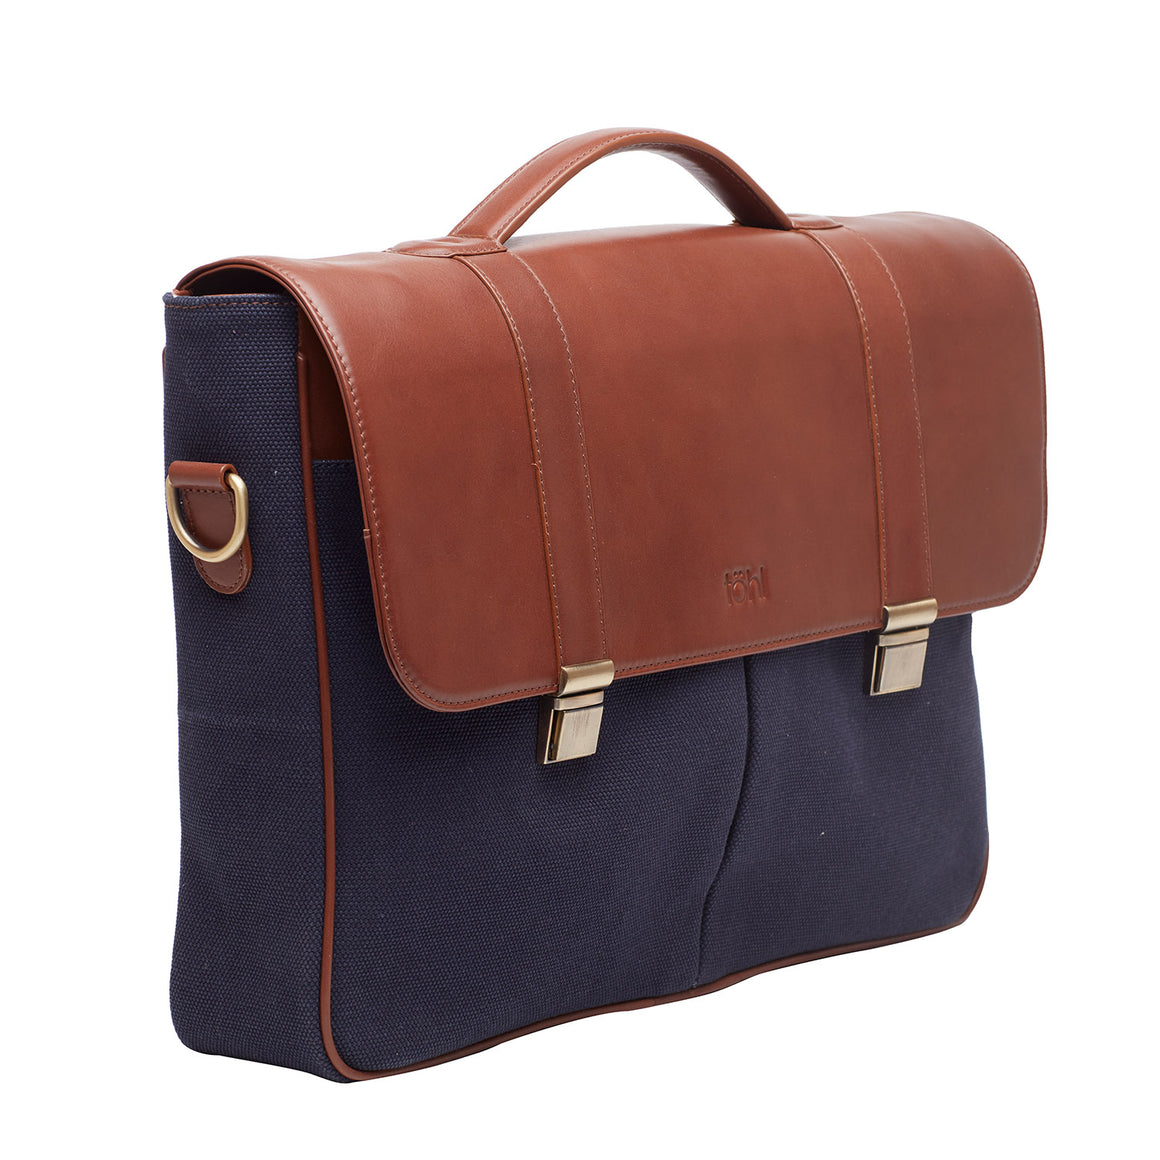 VS 0002 - TOHL LECCO MEN'S VALISES & SATCHELS - NAVY